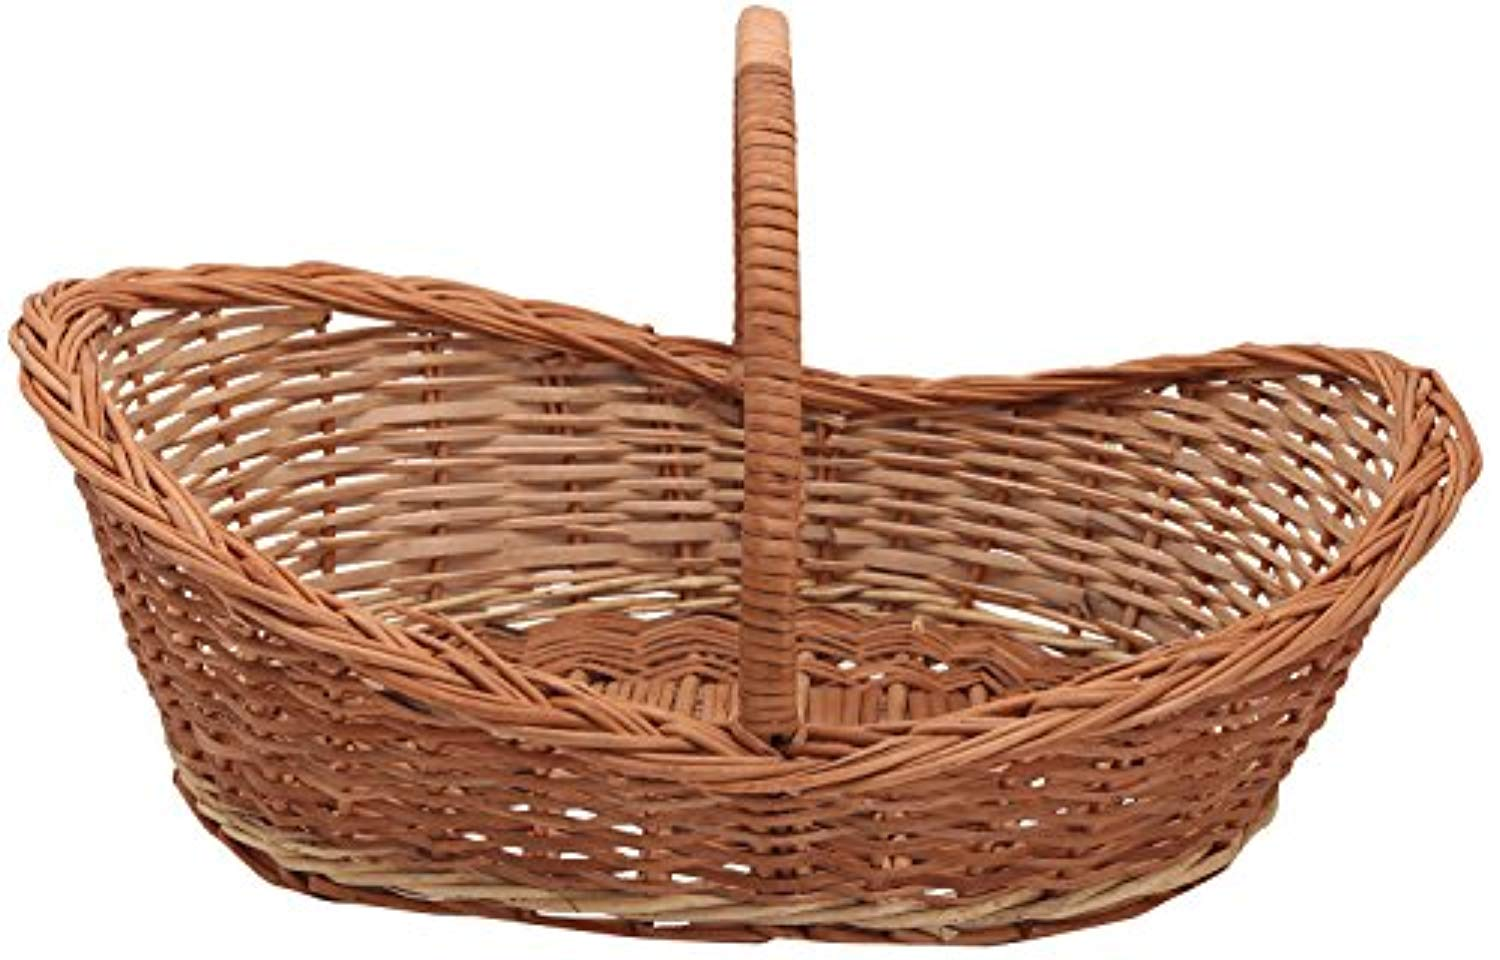 Cane Basket roti Serving Gift Multipurpose Flower Fruit Vegetable (38 cm x 38 cm x 41 cm, Brown) - IRA Furniture